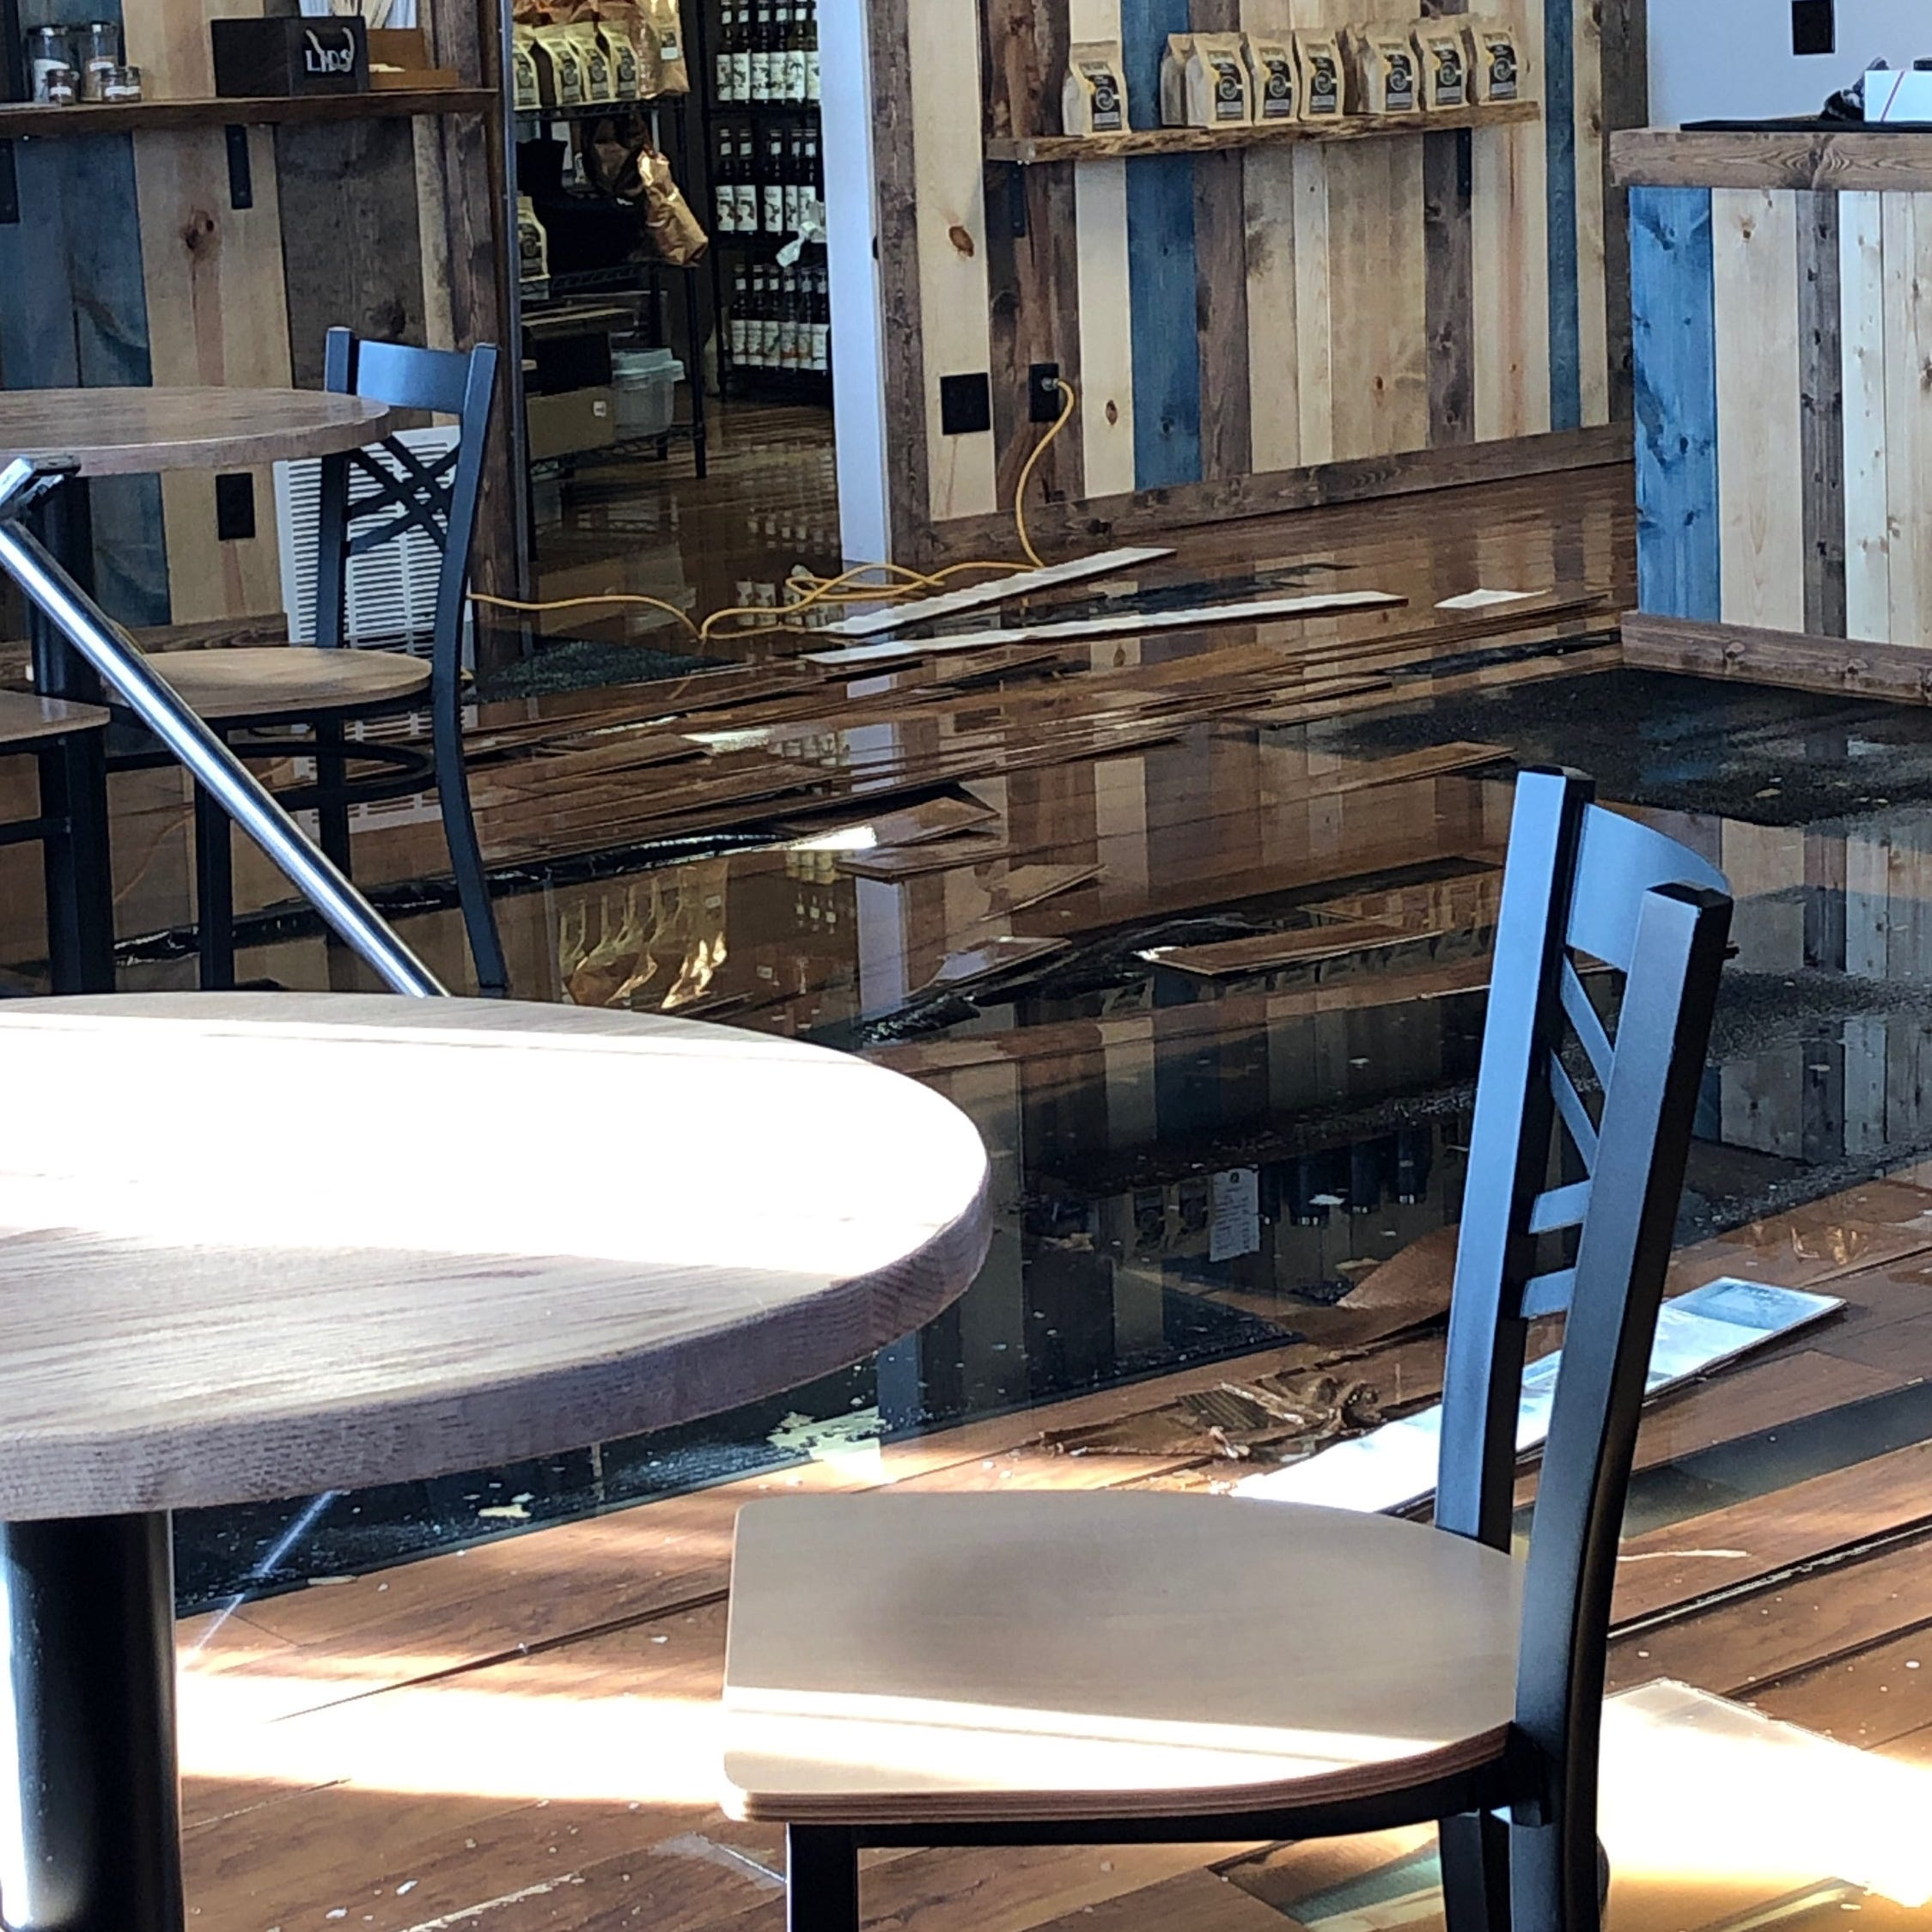 This coffee shop owner spent six months renovating his business. Three months later, half of it was flooded.